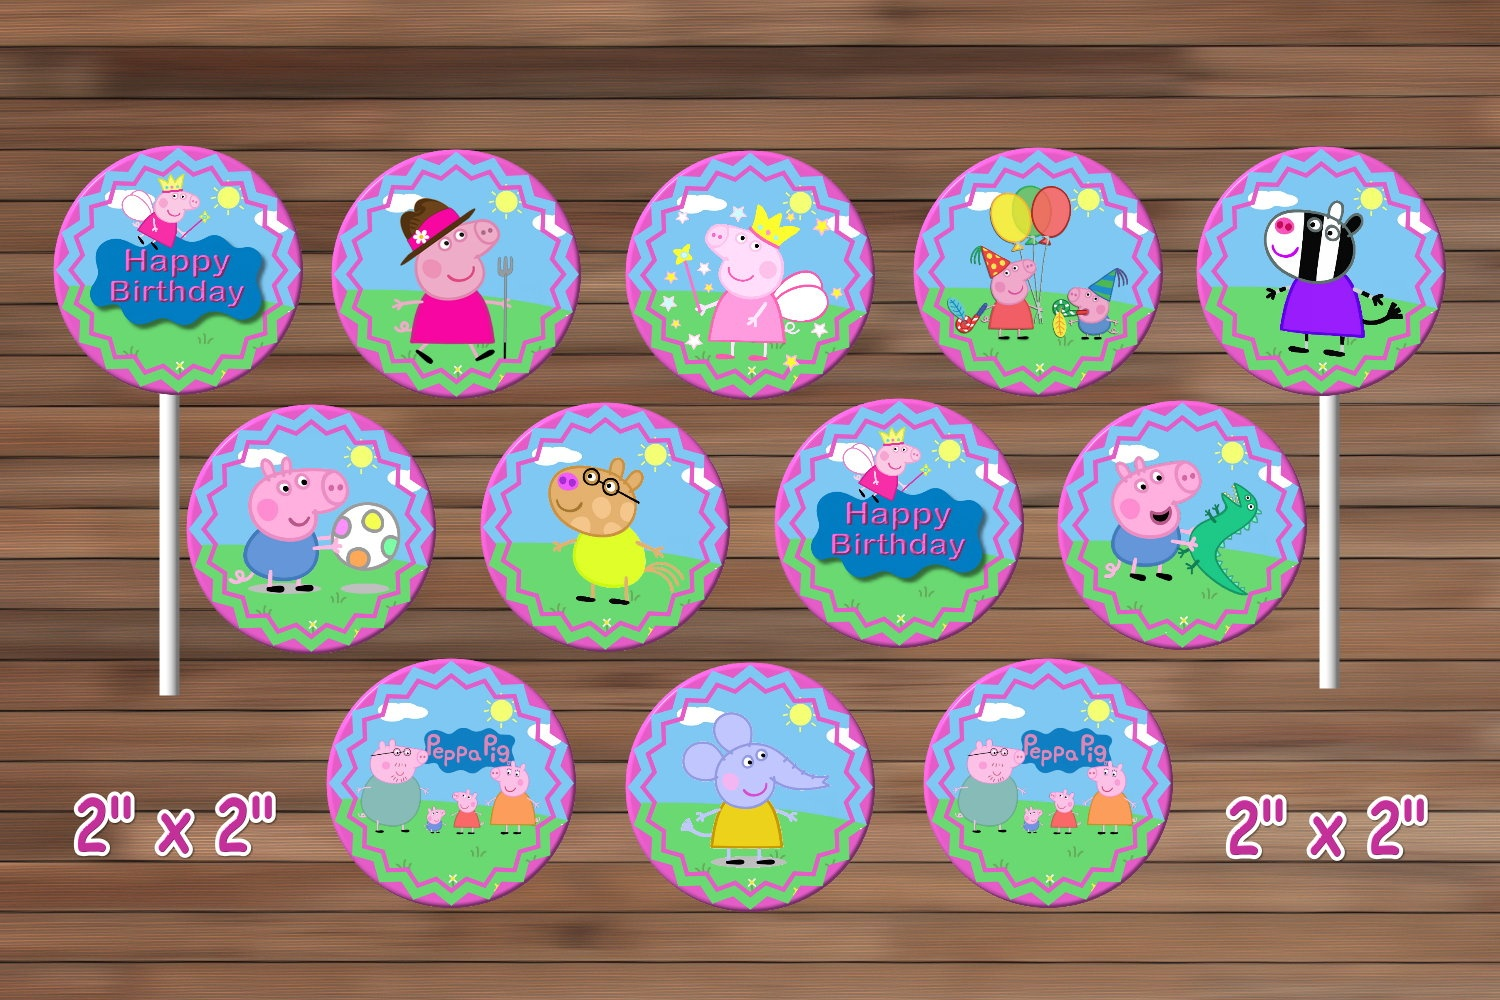 Peppa Pig Free Printables (75+ Images In Collection) Page 1 - Peppa Pig Free Printables